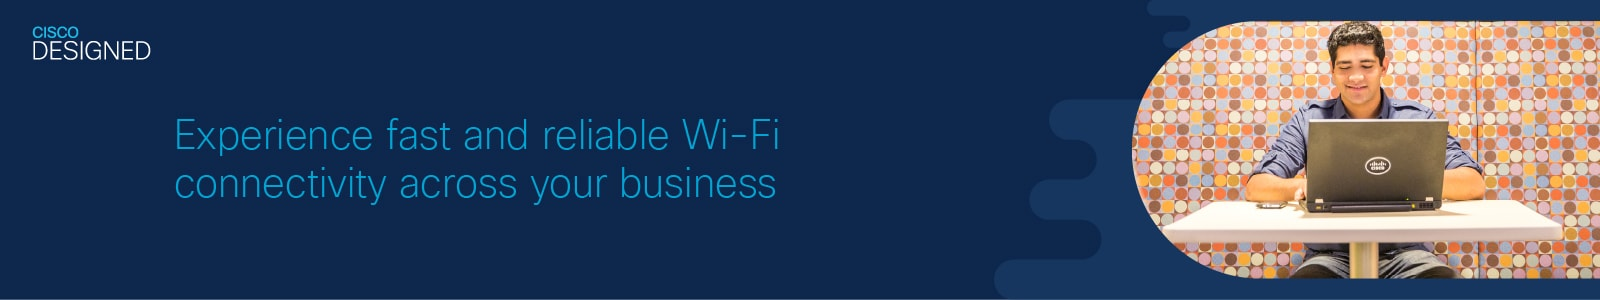 Experience fast and reliable Wi-Fi connectivity across your business